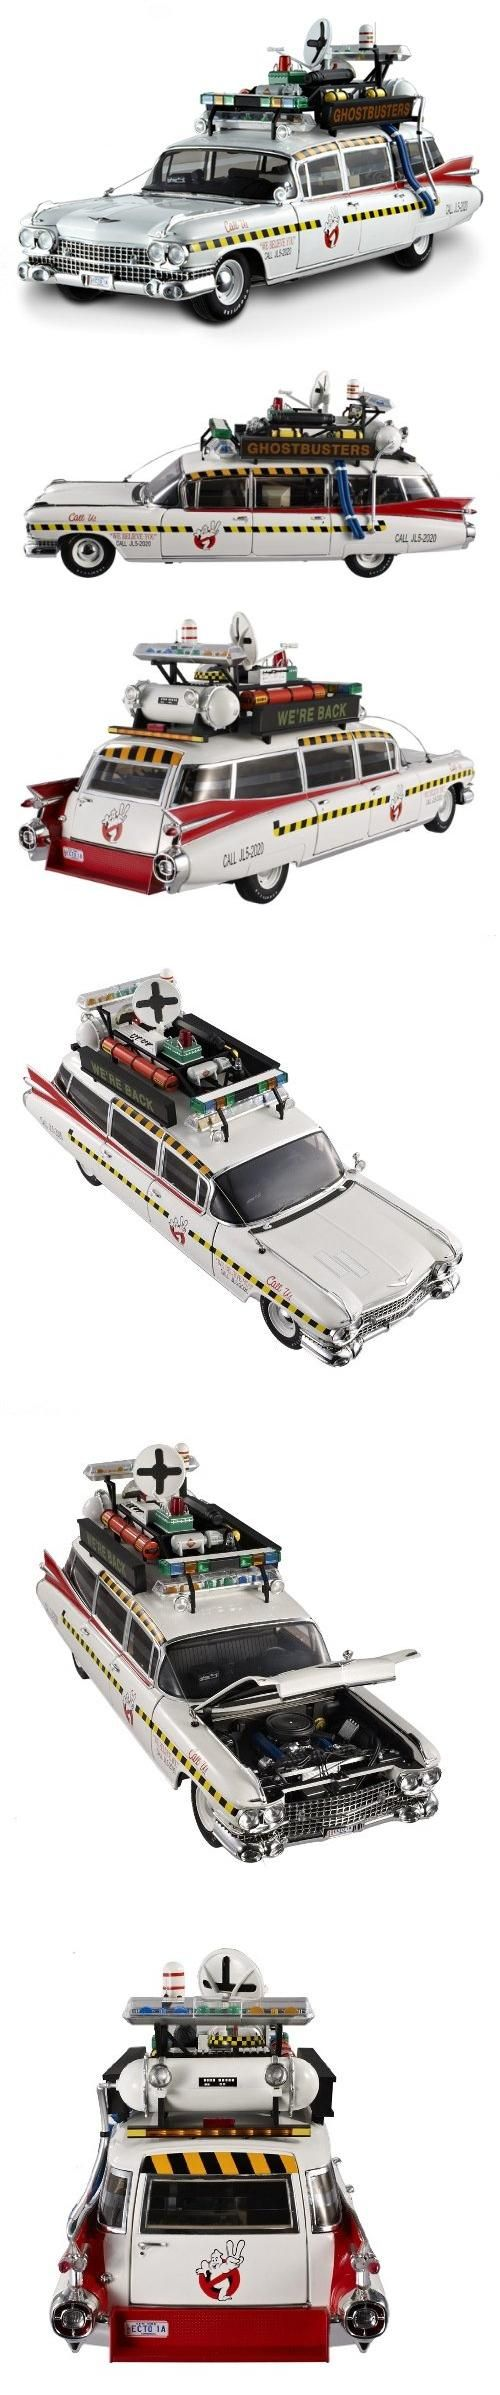 58 best ghostbusters ecto 1 images on pinterest. Black Bedroom Furniture Sets. Home Design Ideas